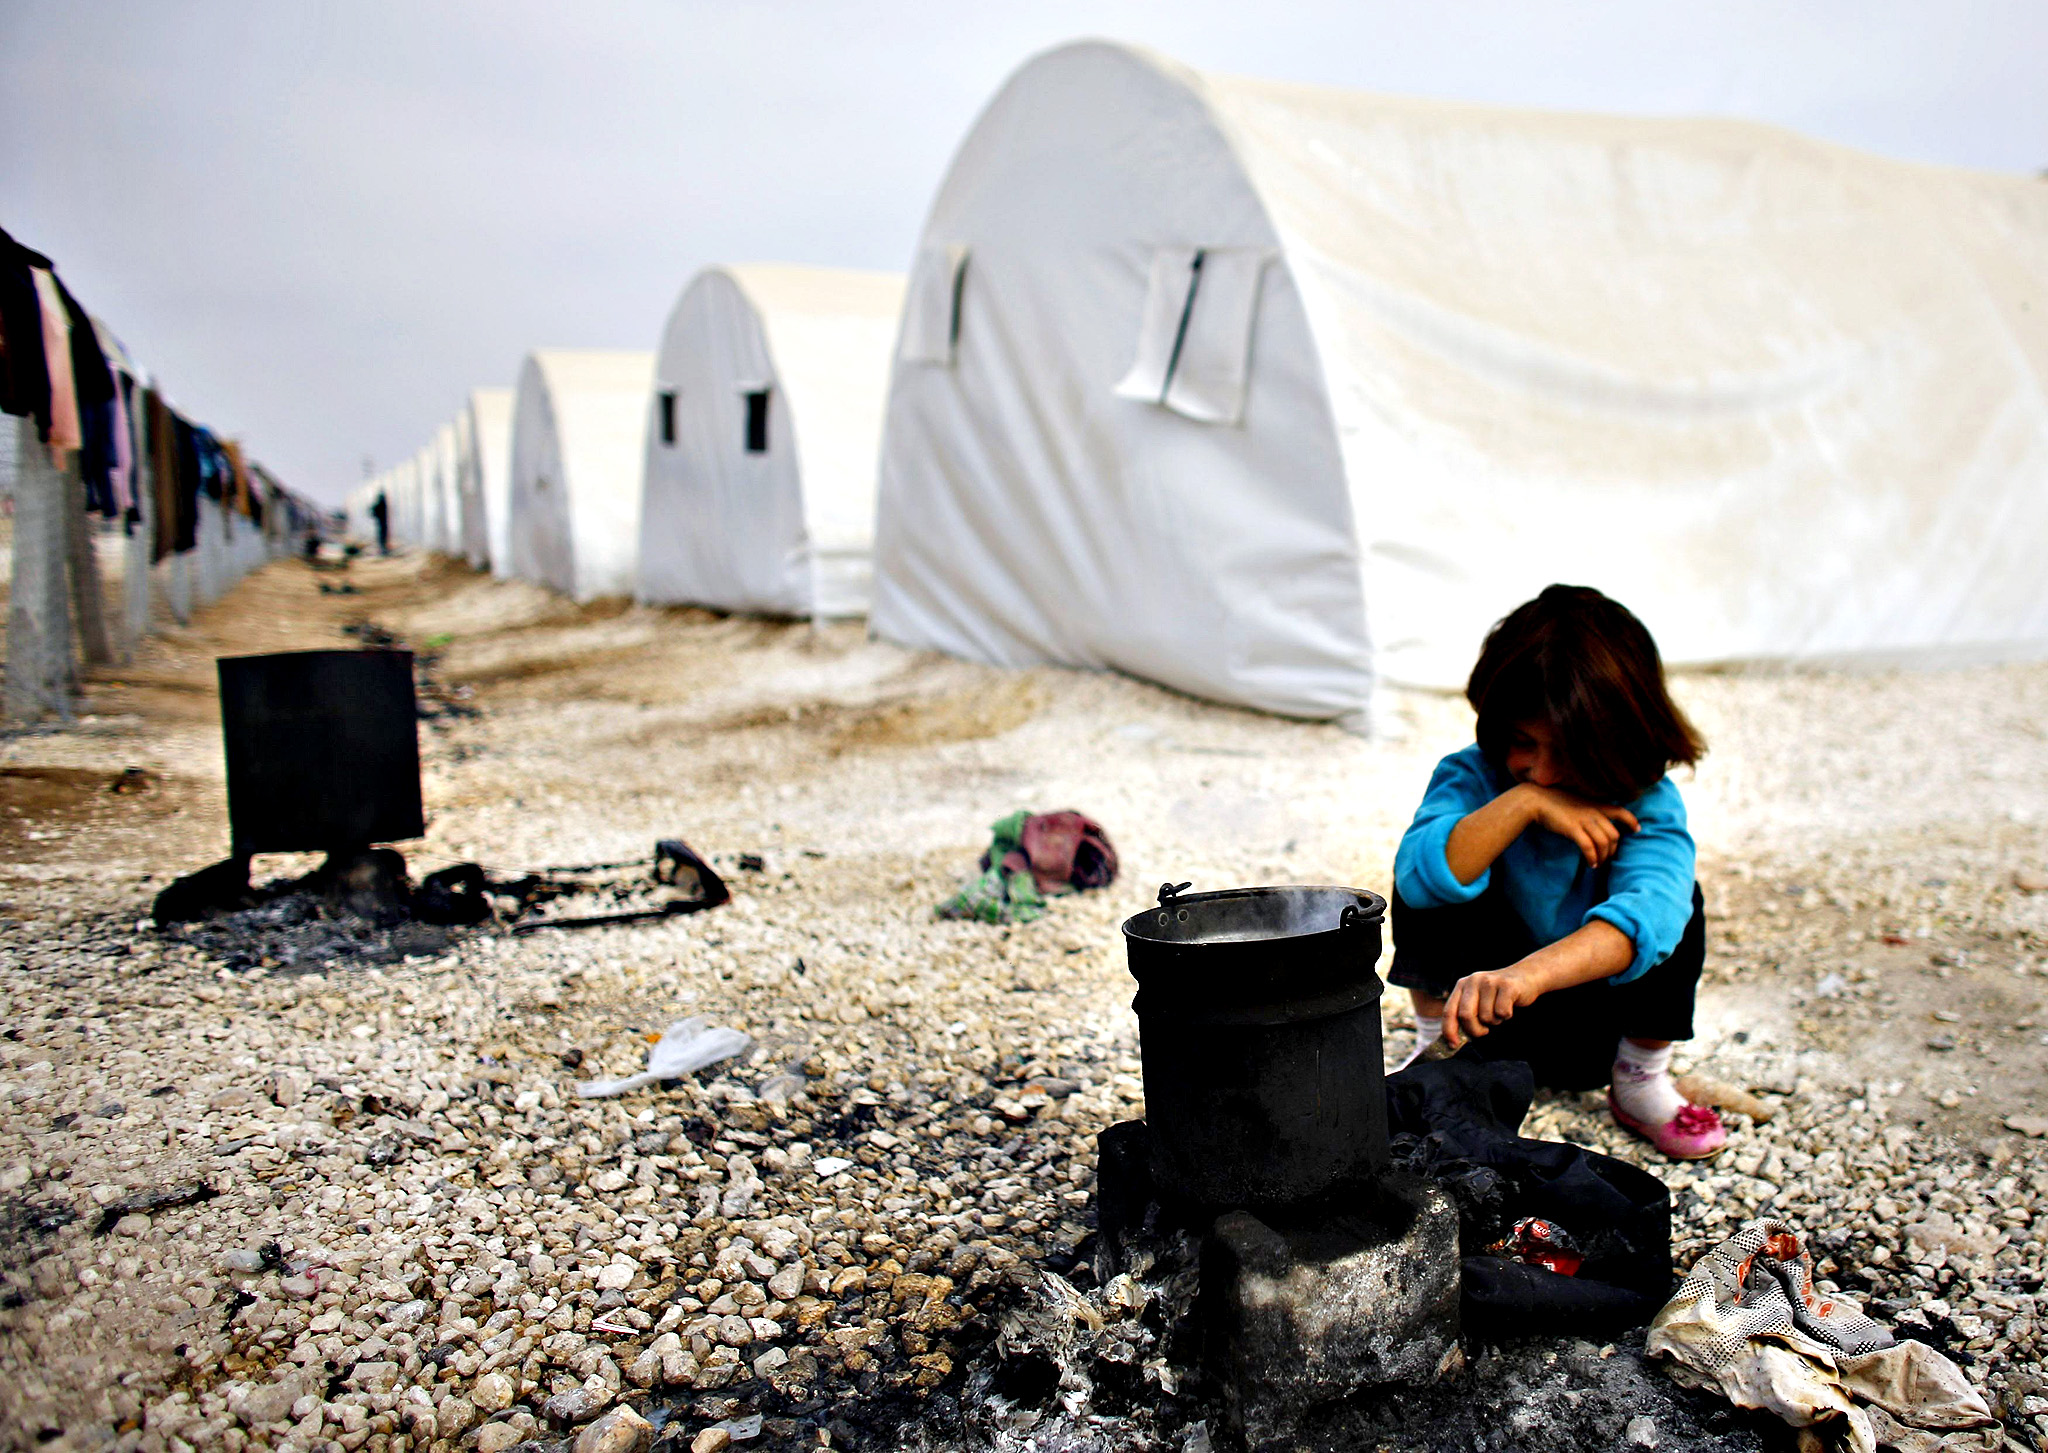 Young girl cooking on a fire pit in a row of tents in a Syrian refugee camp.